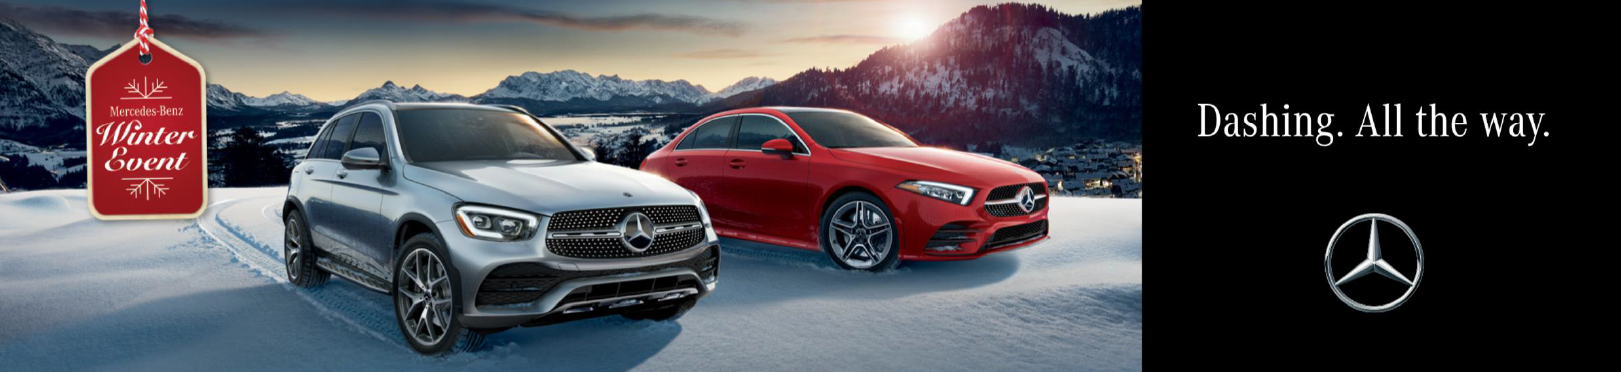 The Mercedes-Benz Winter Event